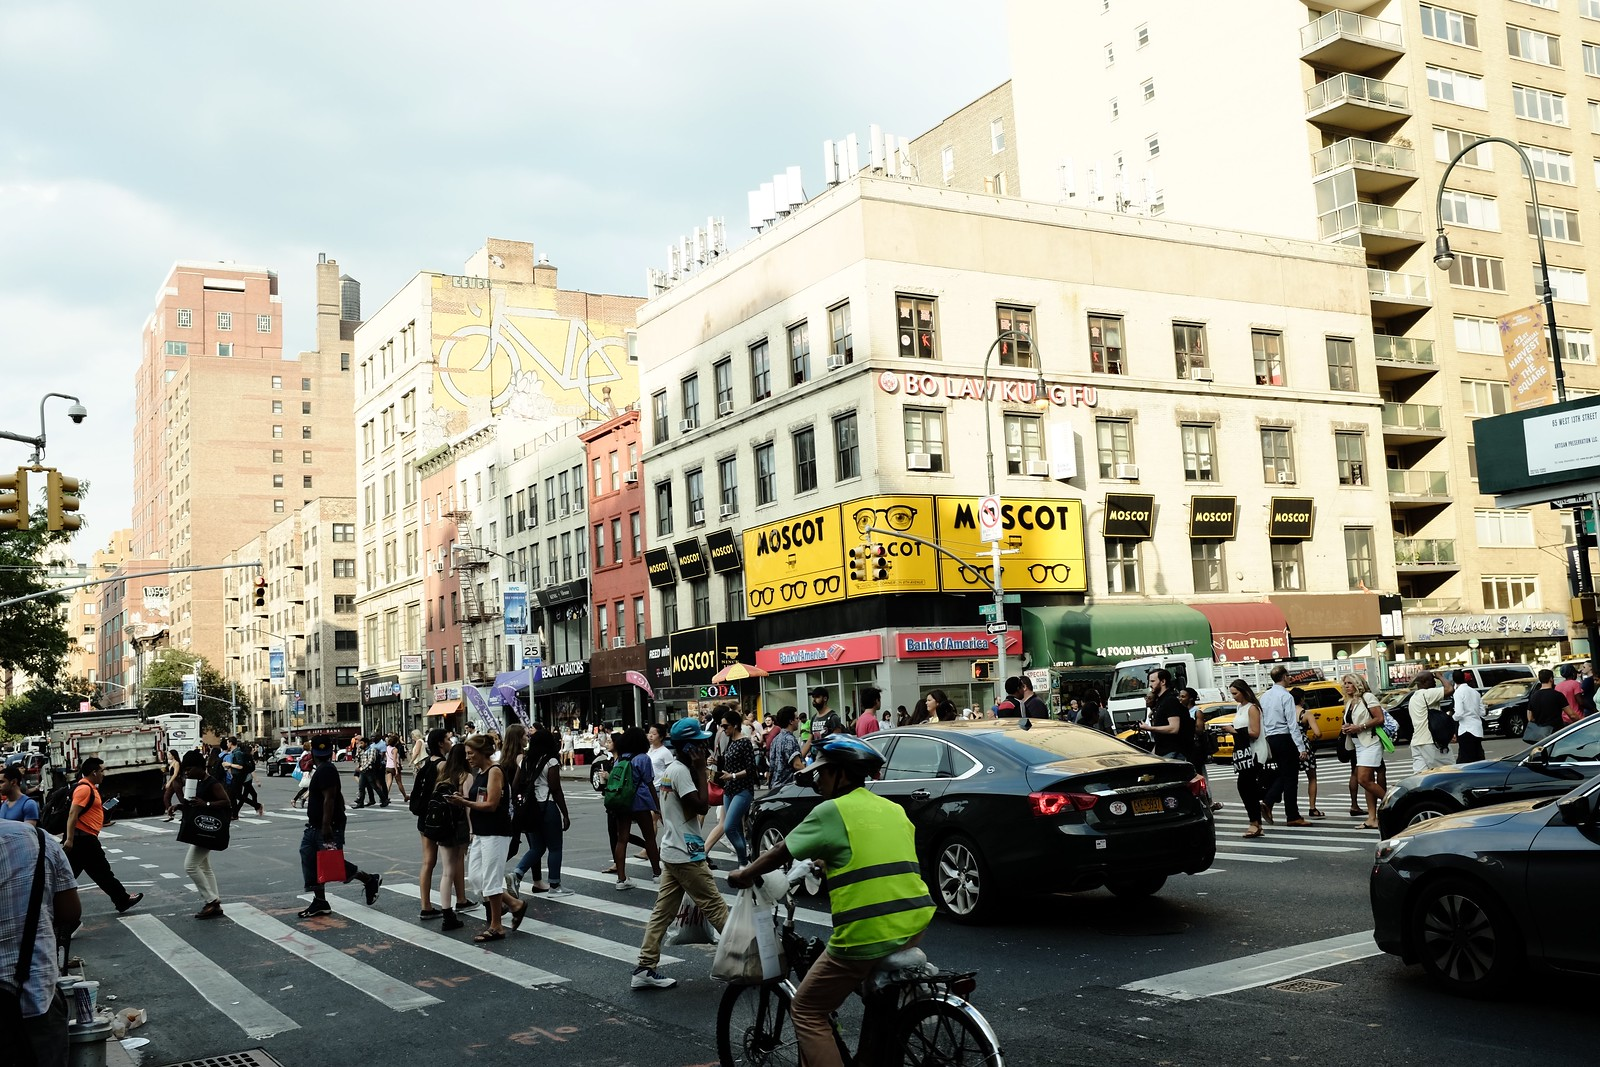 The NEW YORK by FUJIFILM X100S.